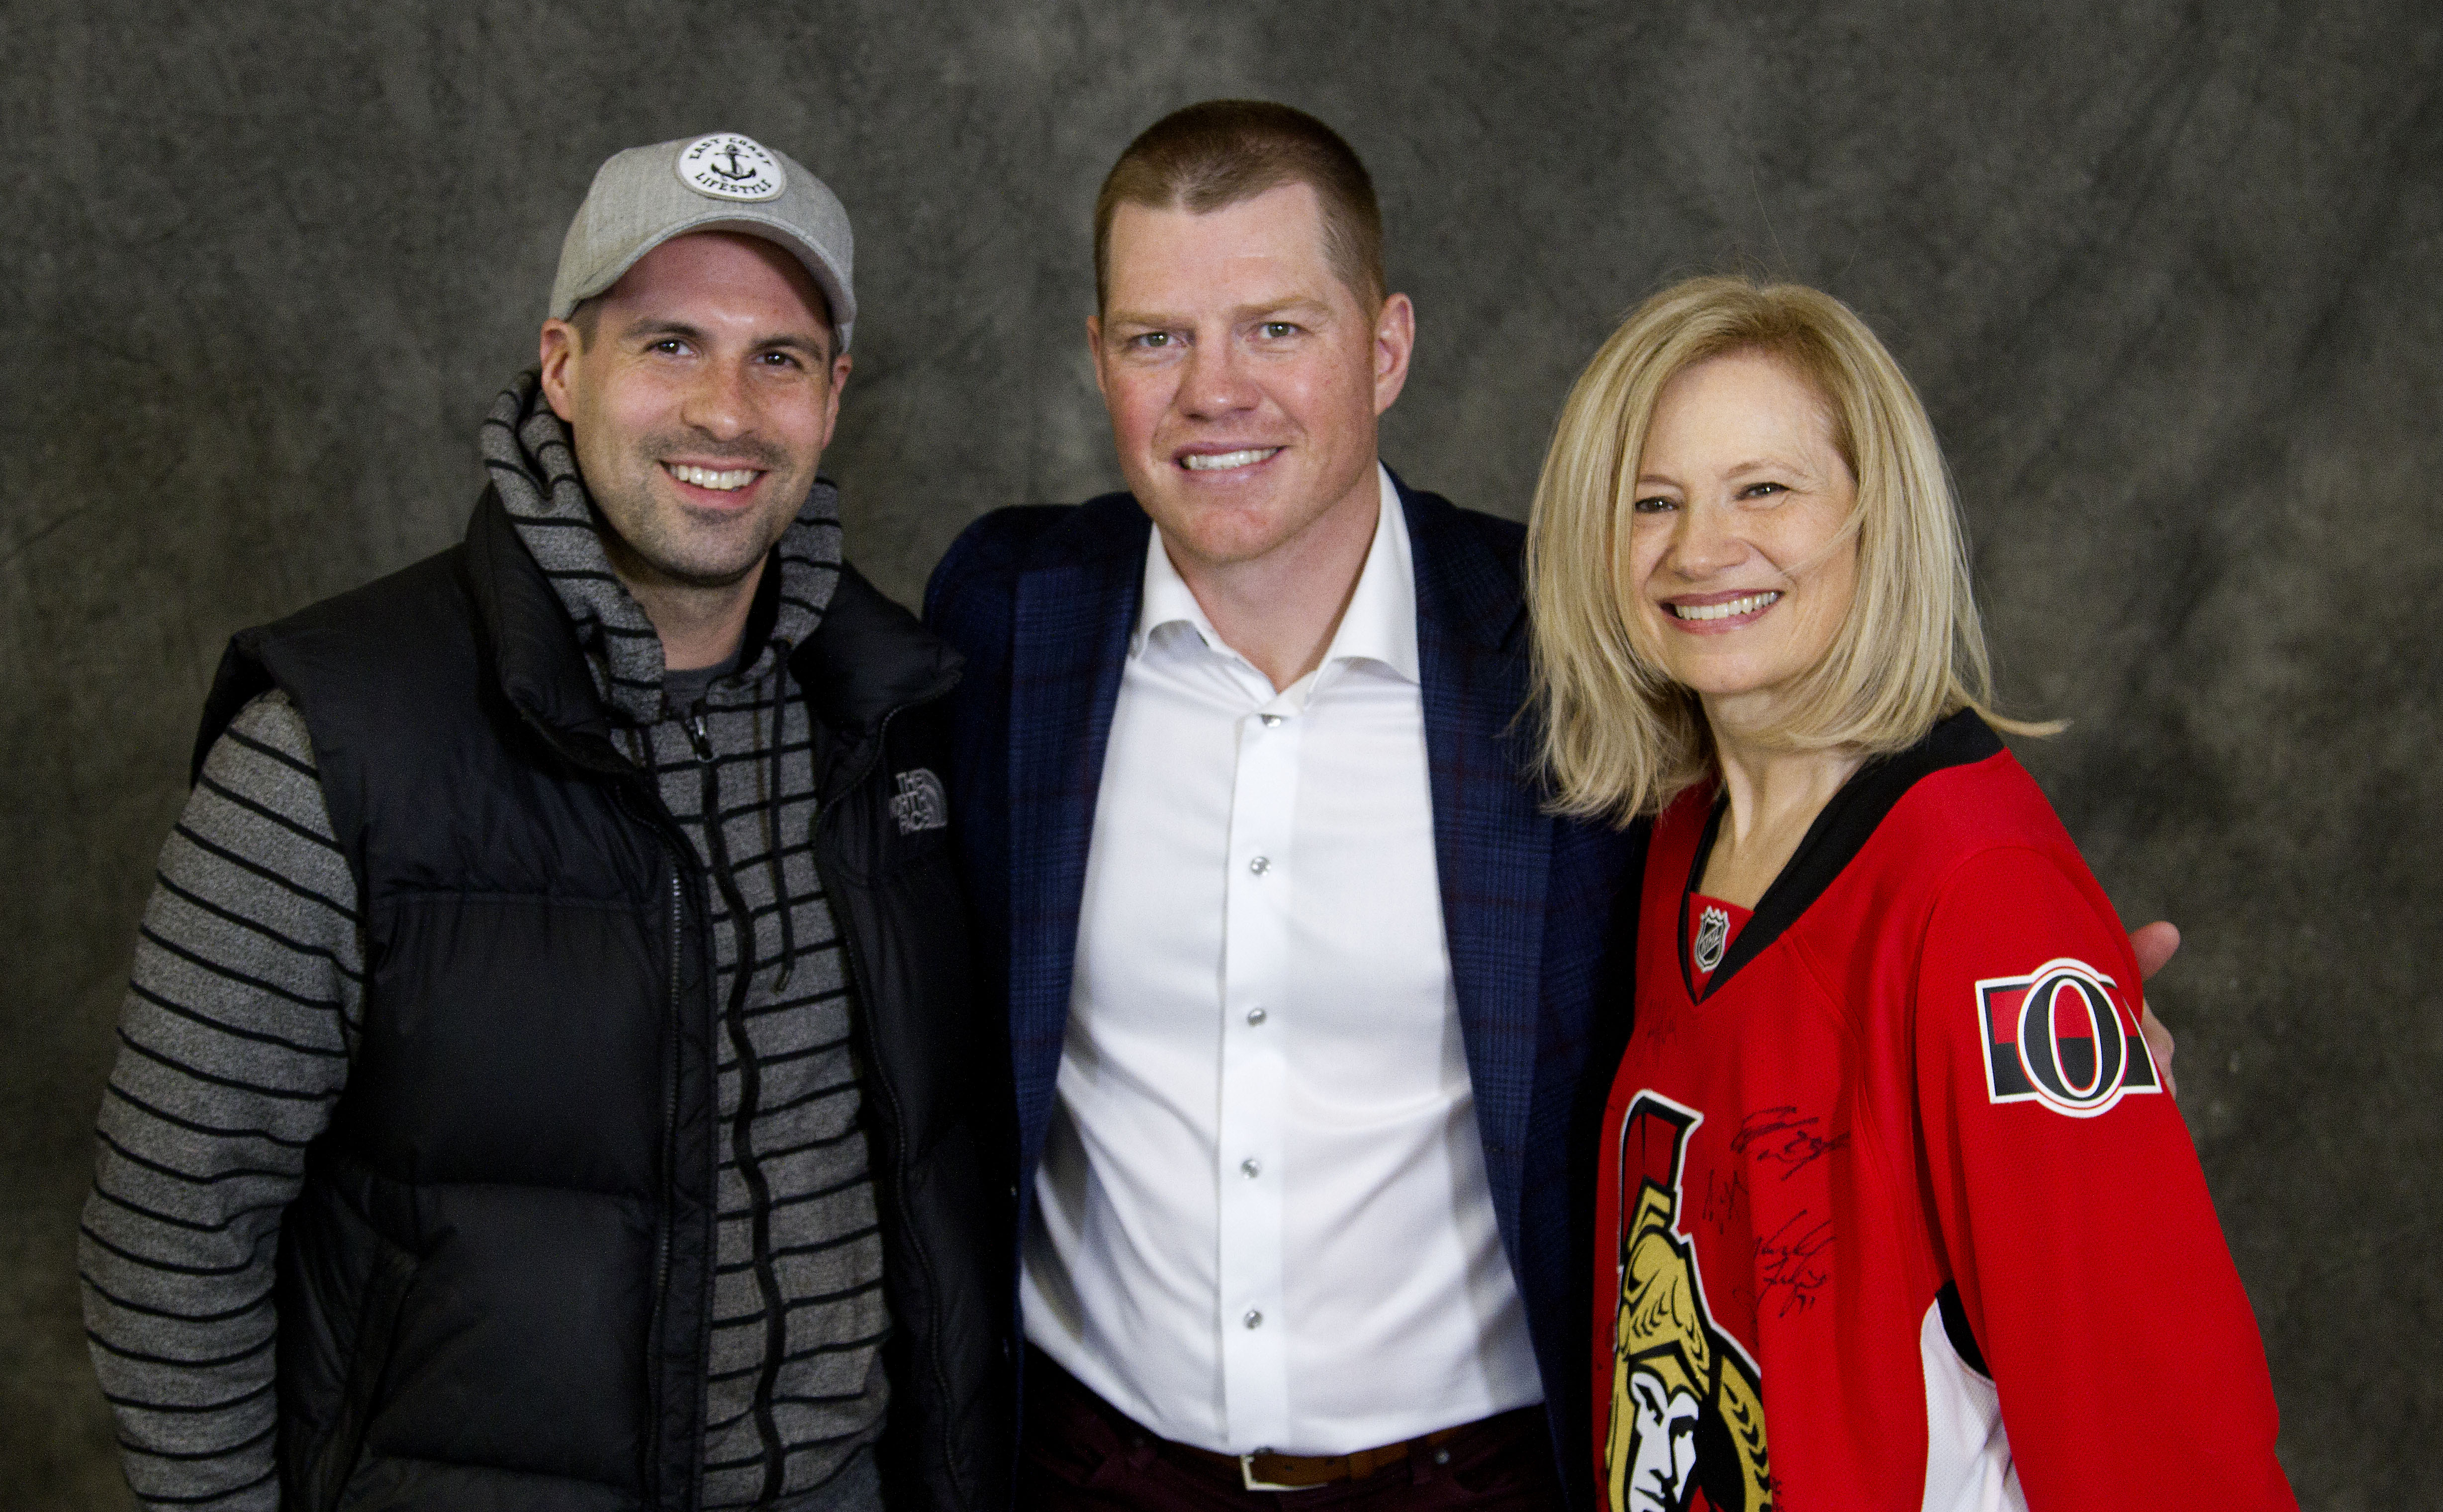 Professional hockey player, Chris Neil, with a PPRA board member on either side.